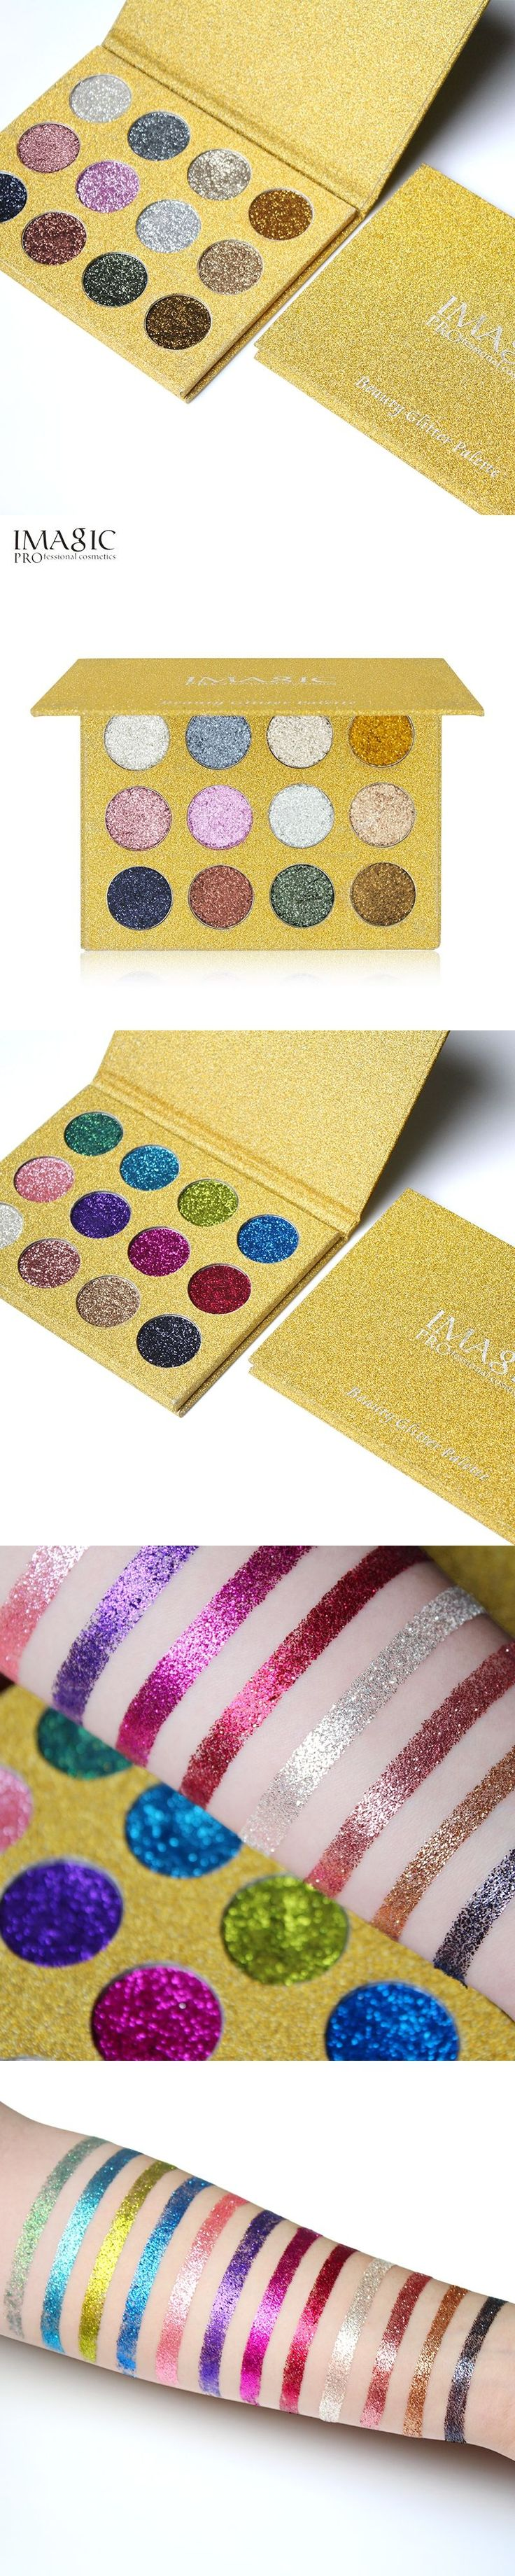 IMAGIC Pressed Glitters Eyeshadow Palette 12 Colors Bright Rainbow Gltters Eye Shadow Fill In Magetic  Make Up Cosmetic #MakeupWakeup